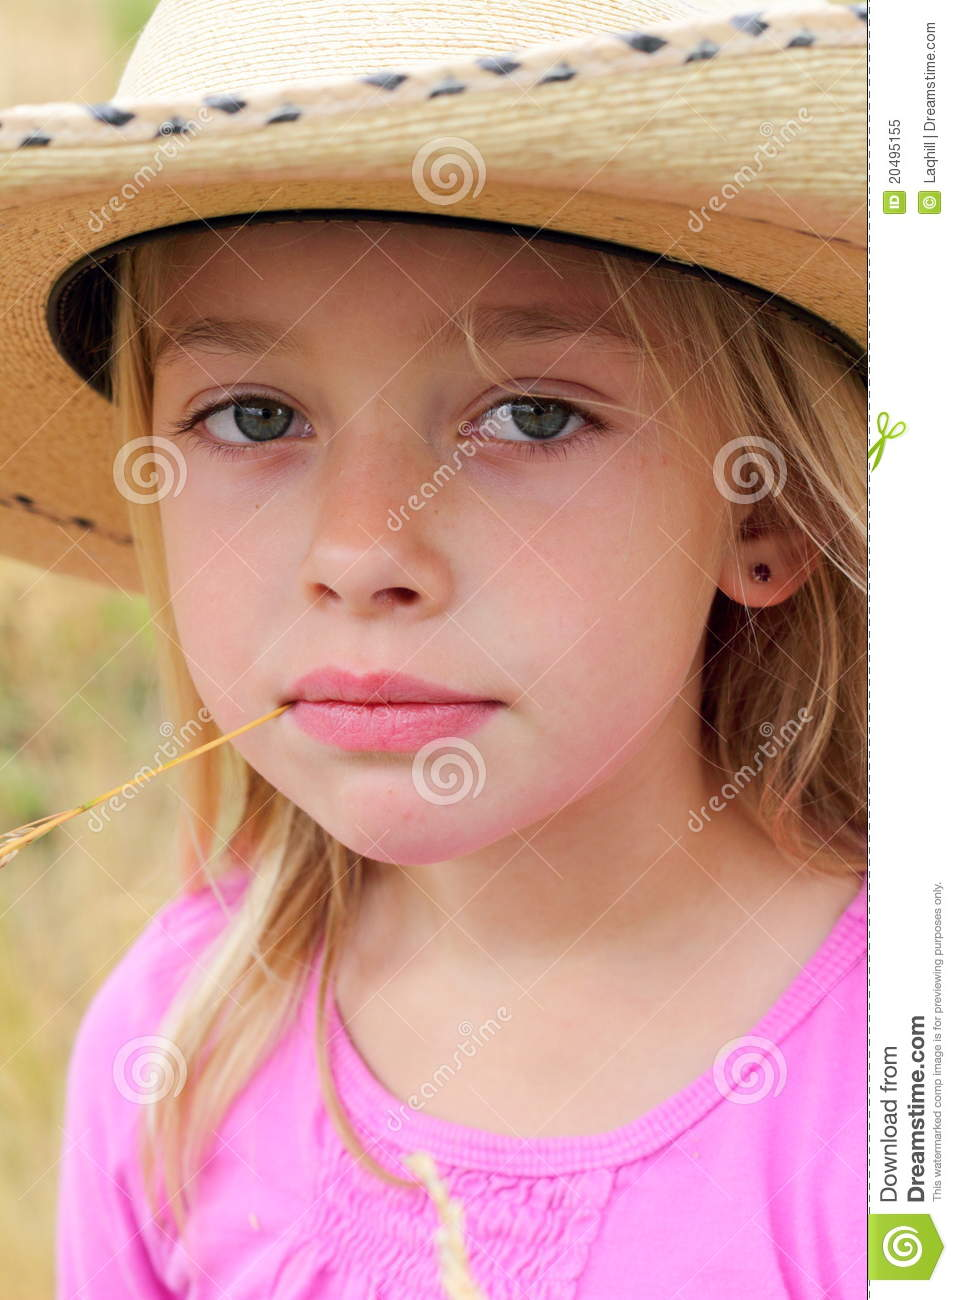 9dc4e2aaf Little Cowgirl stock image. Image of blond, shallow, wear - 20495155